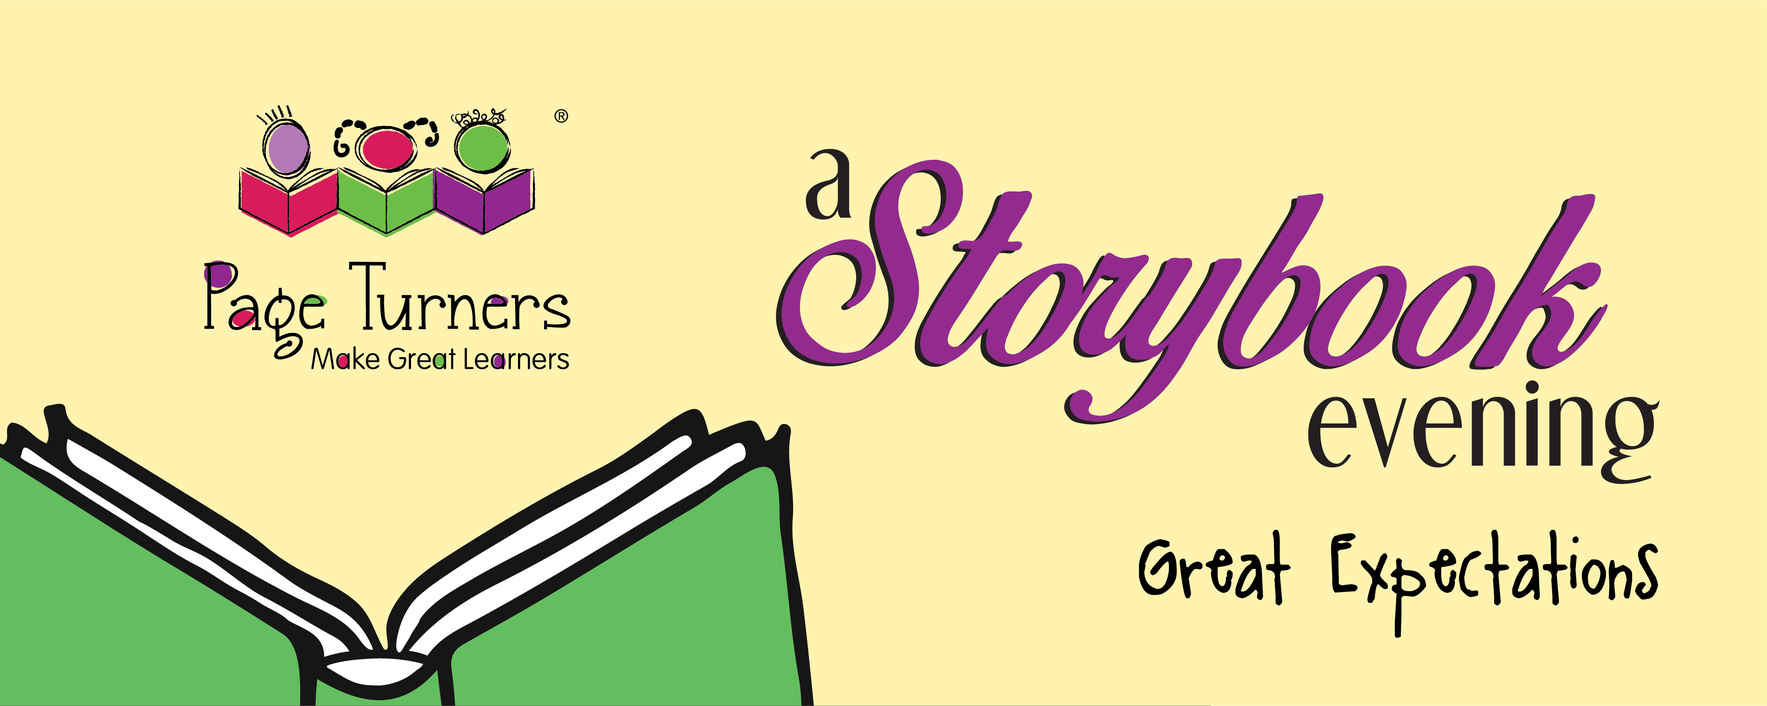 Chick-fil-A Foundation presents A Storybook Evening  image